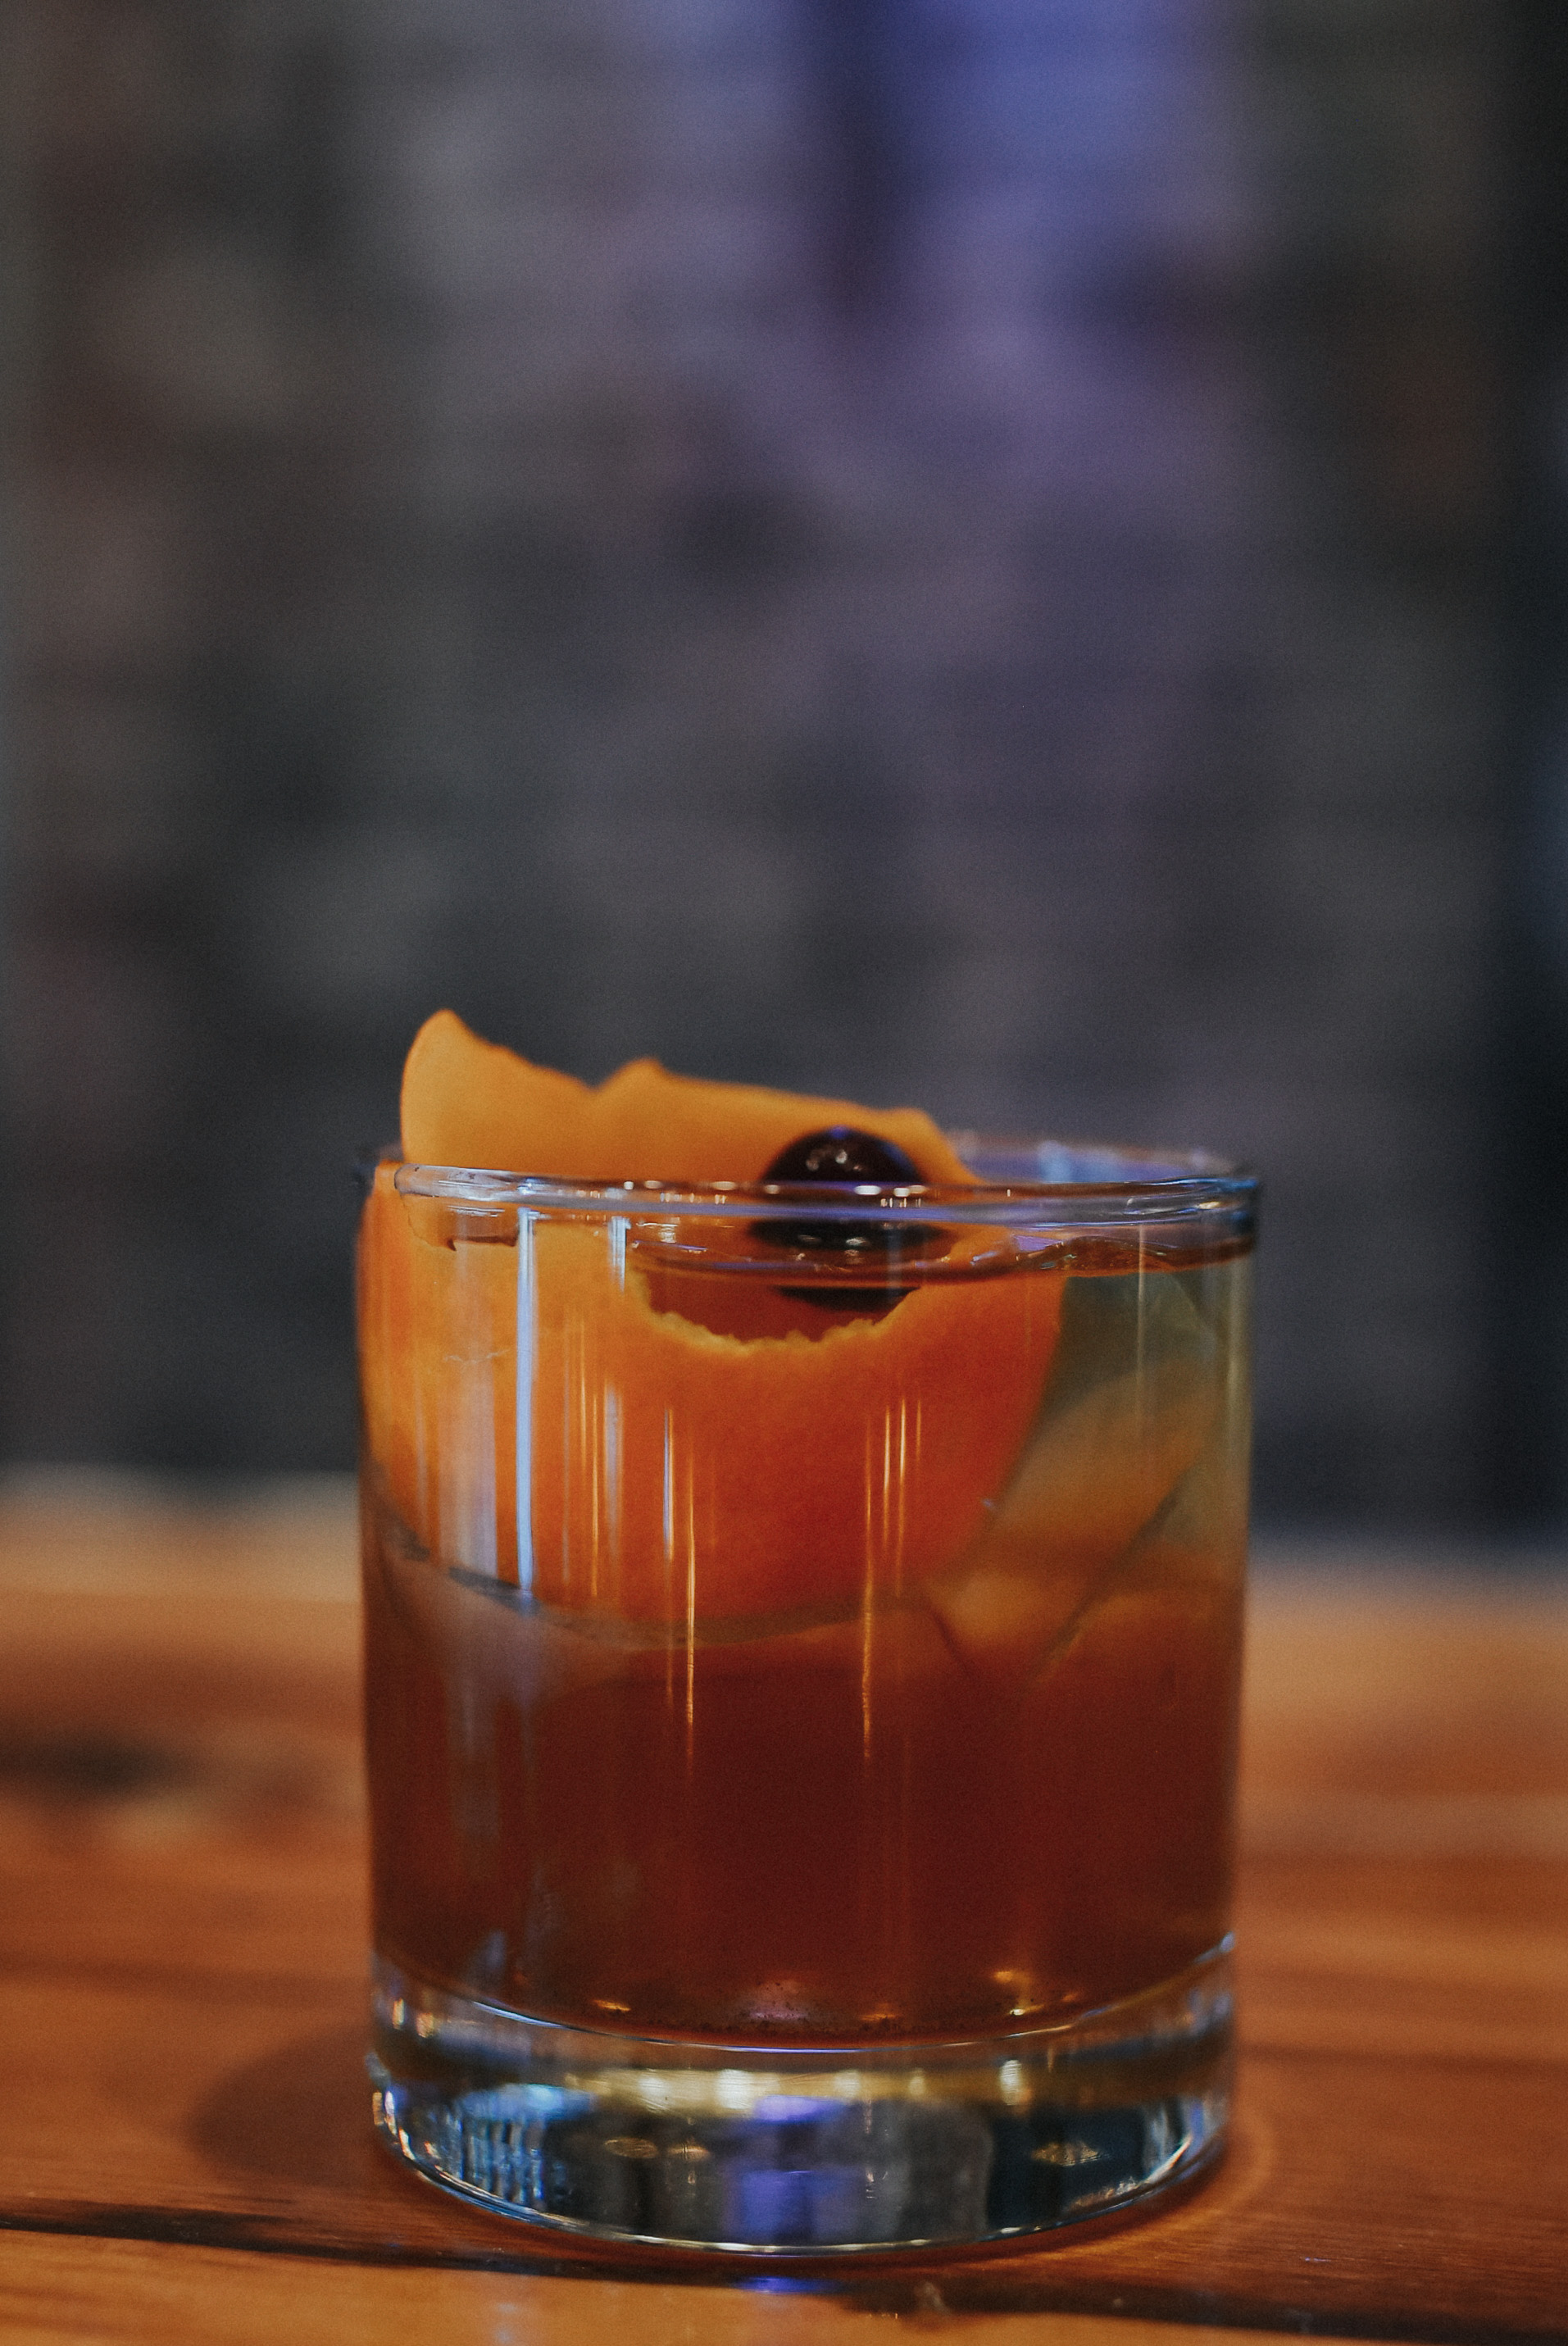 Fall Fashion - Pendelton Rye Whiskey, Lairds Applejack, house-made spiced demerara, cranberry bitters